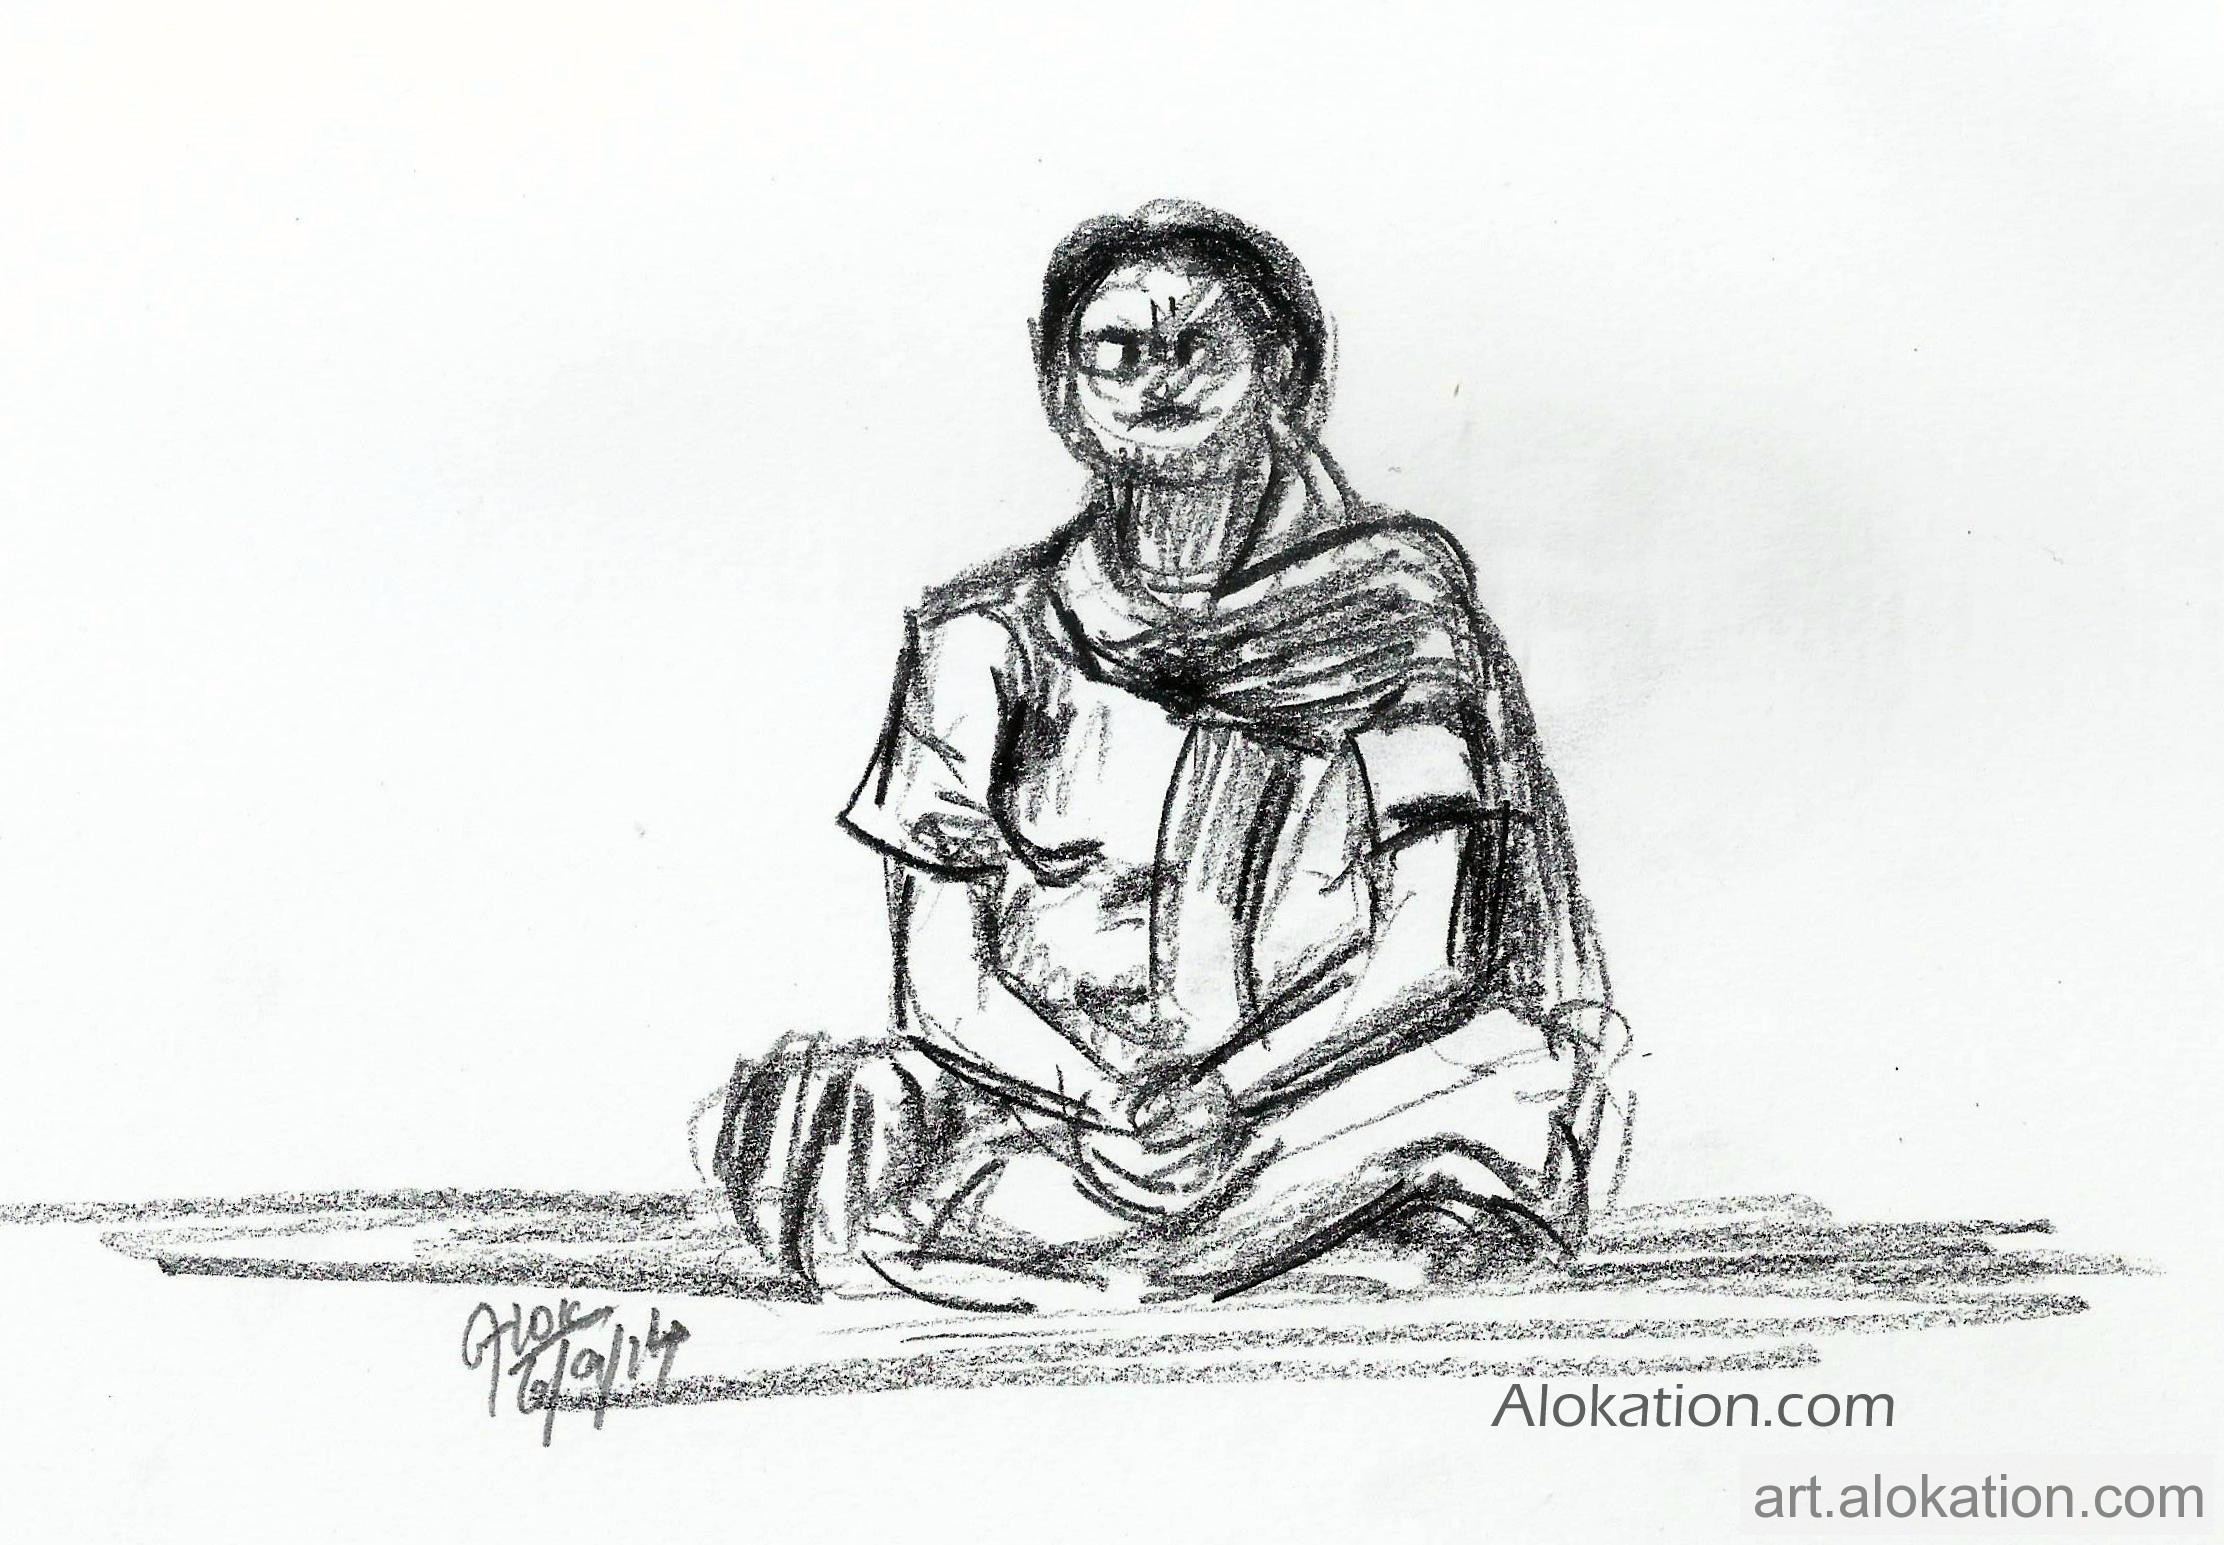 alokation-sketch-06091405